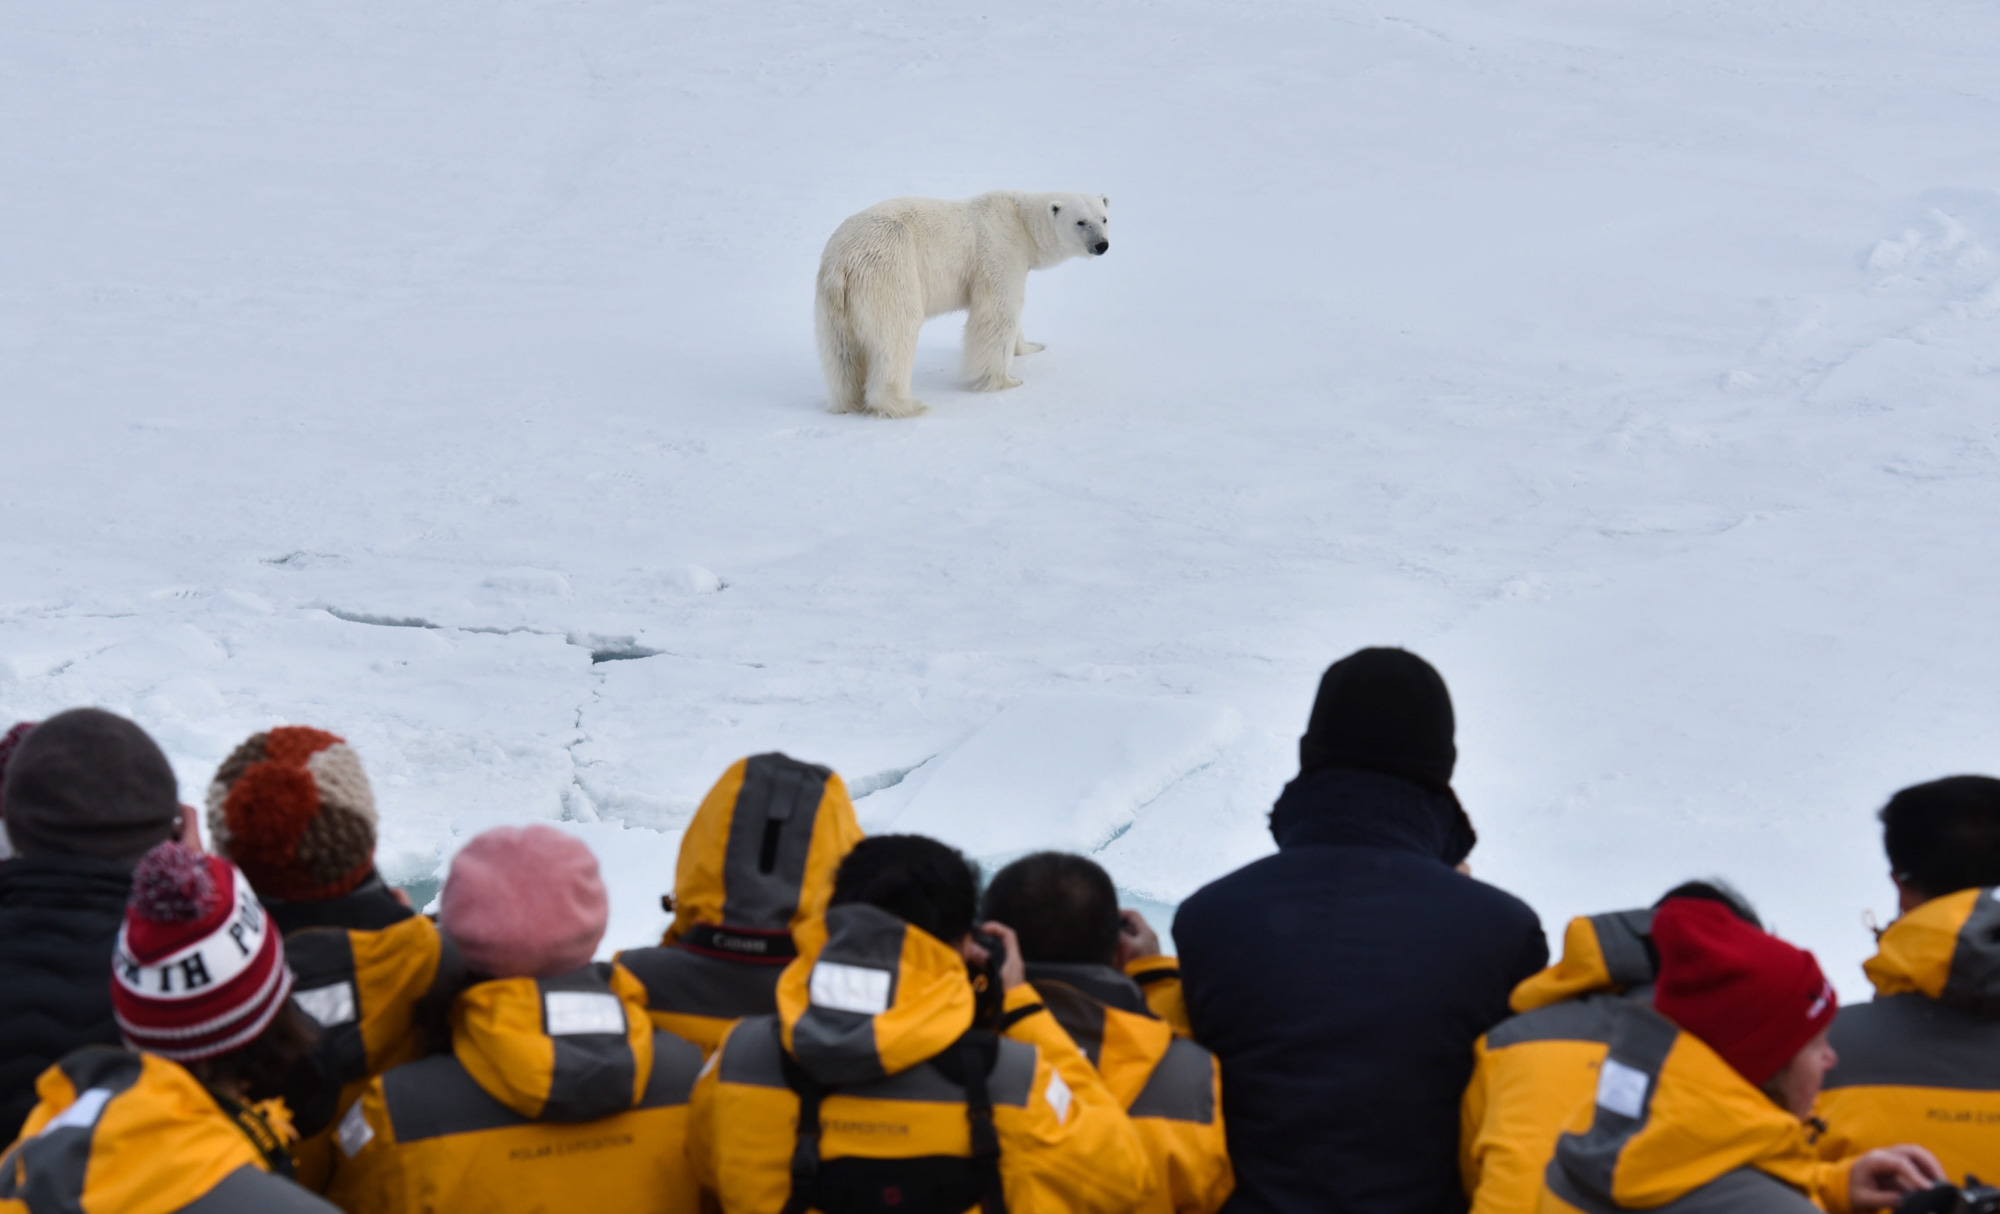 North pole expedition visitors watching polar bear on the ice